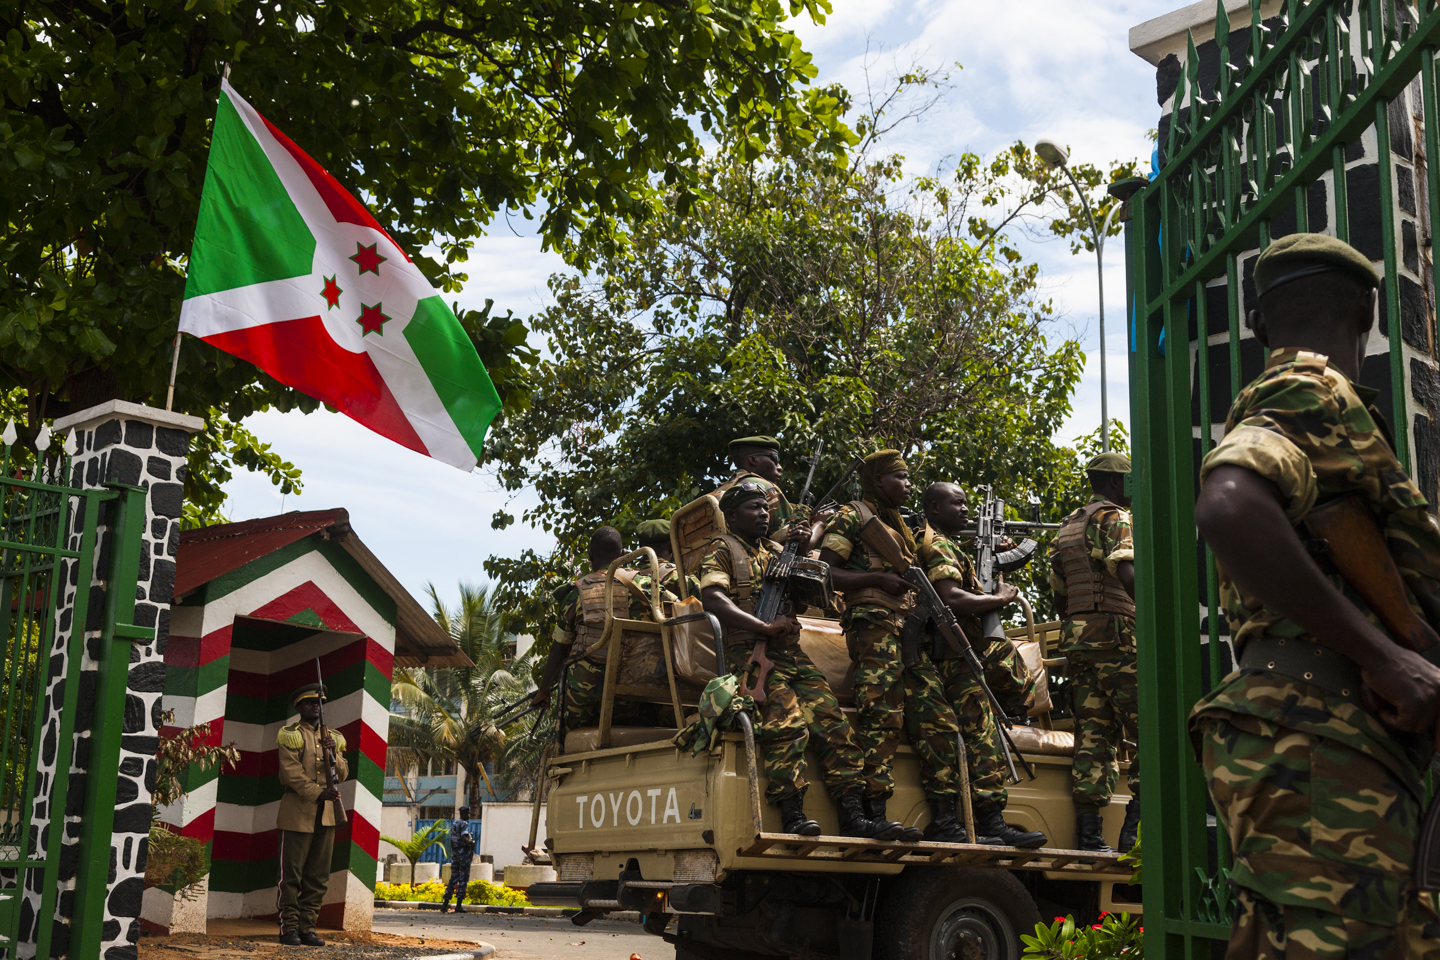 Military forces are seen leaving the presidential compound in Bujumbura, Burundi, May 17, 2015.